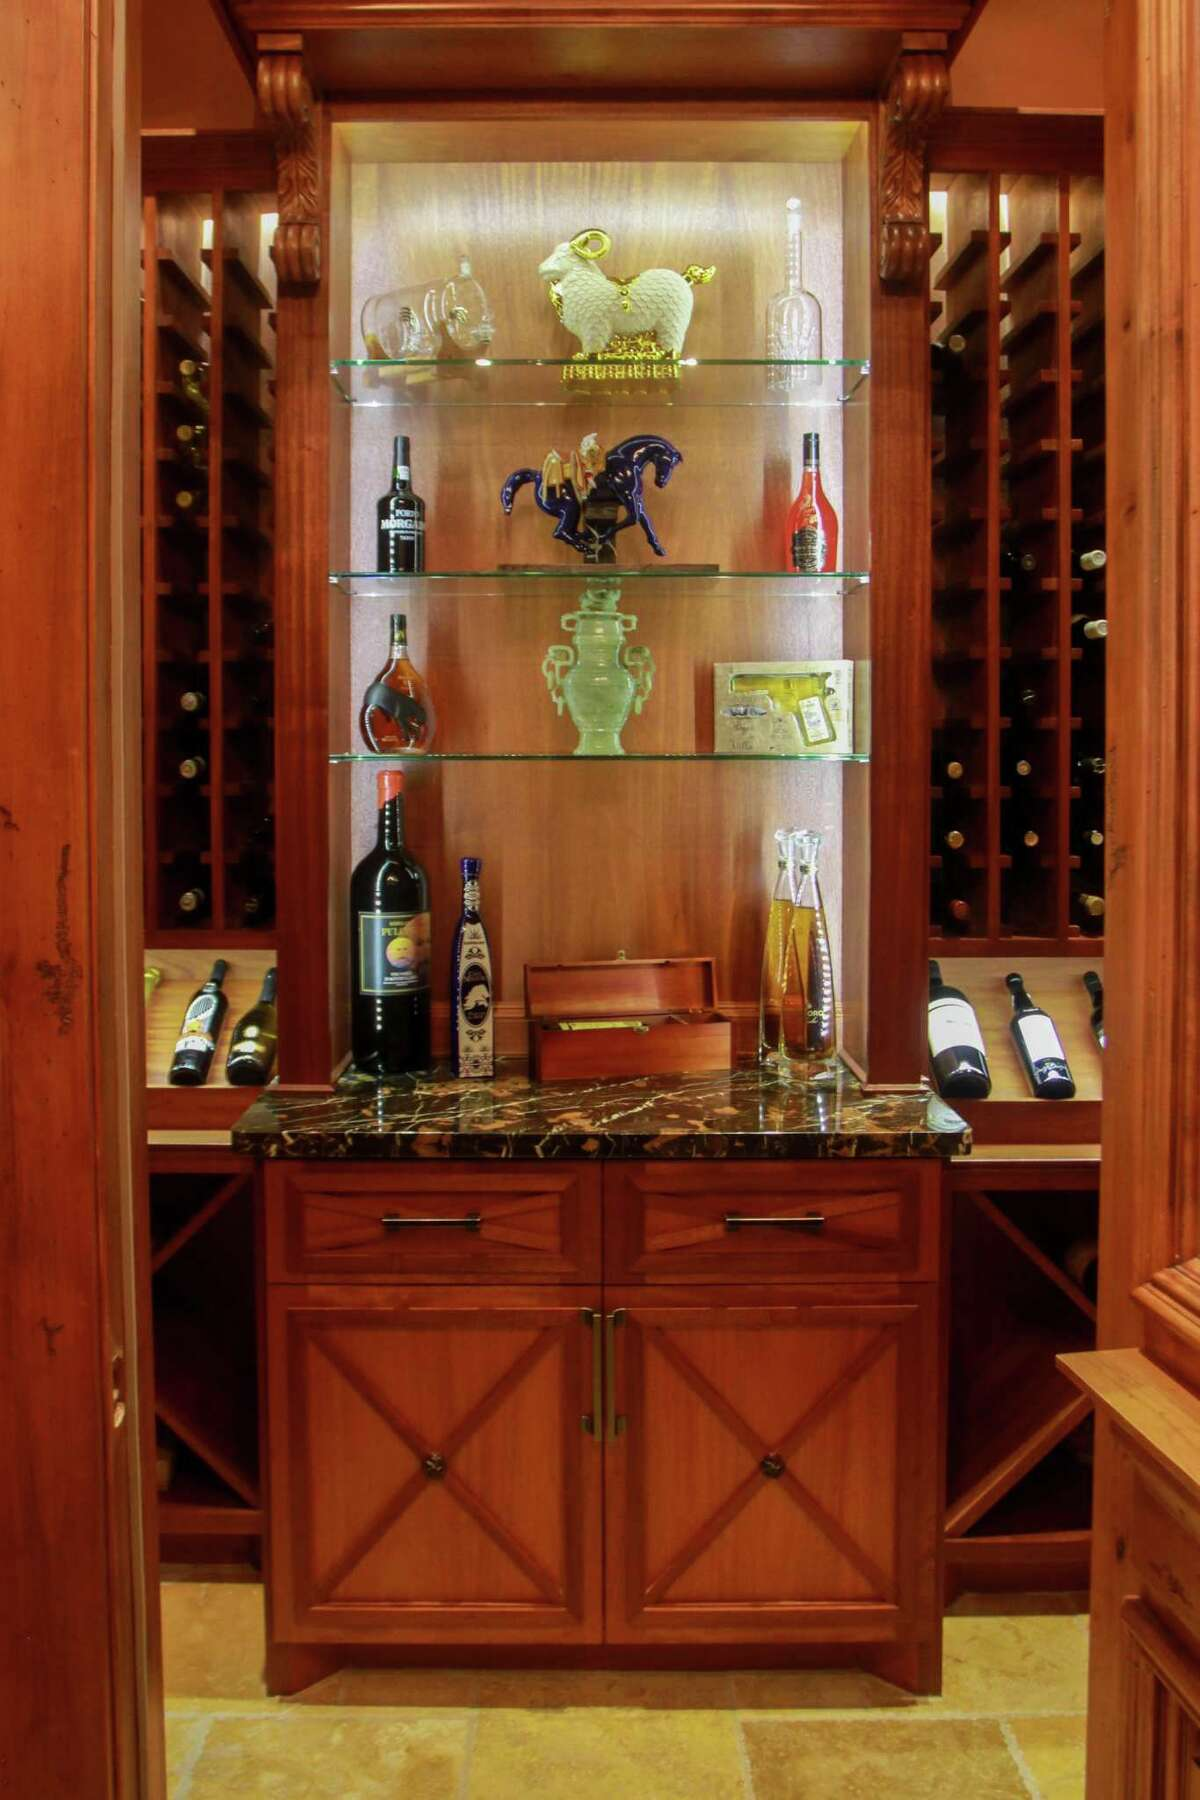 The wine cellar and tequila tasting room at 11010 N Country Squire Street in Piney Point Village in Houston. The house was recently on the market for $7 million.